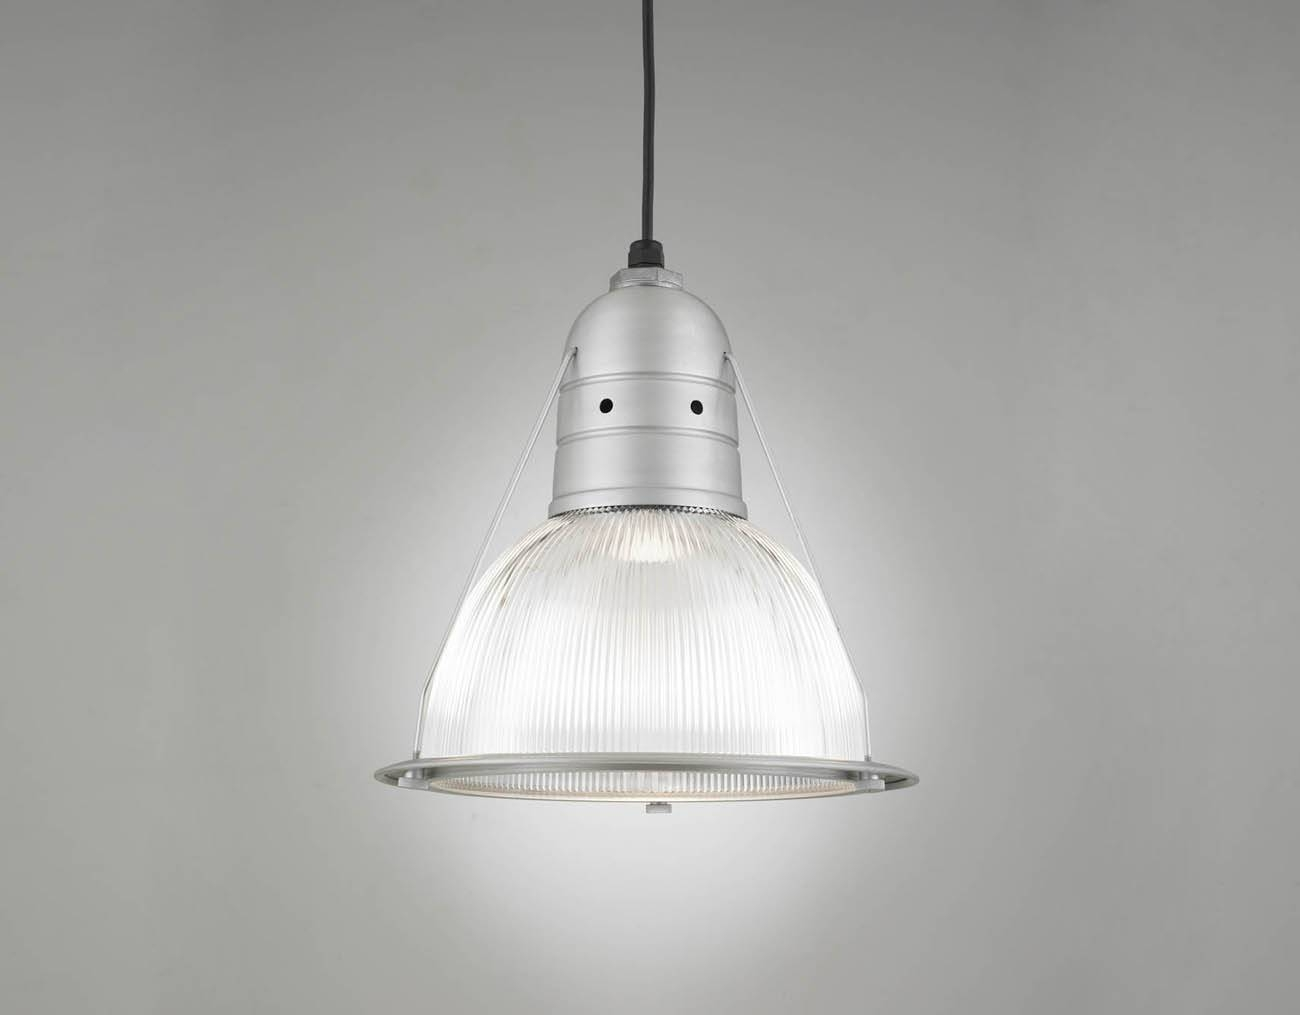 Popular Photo of Commercial Pendant Lights